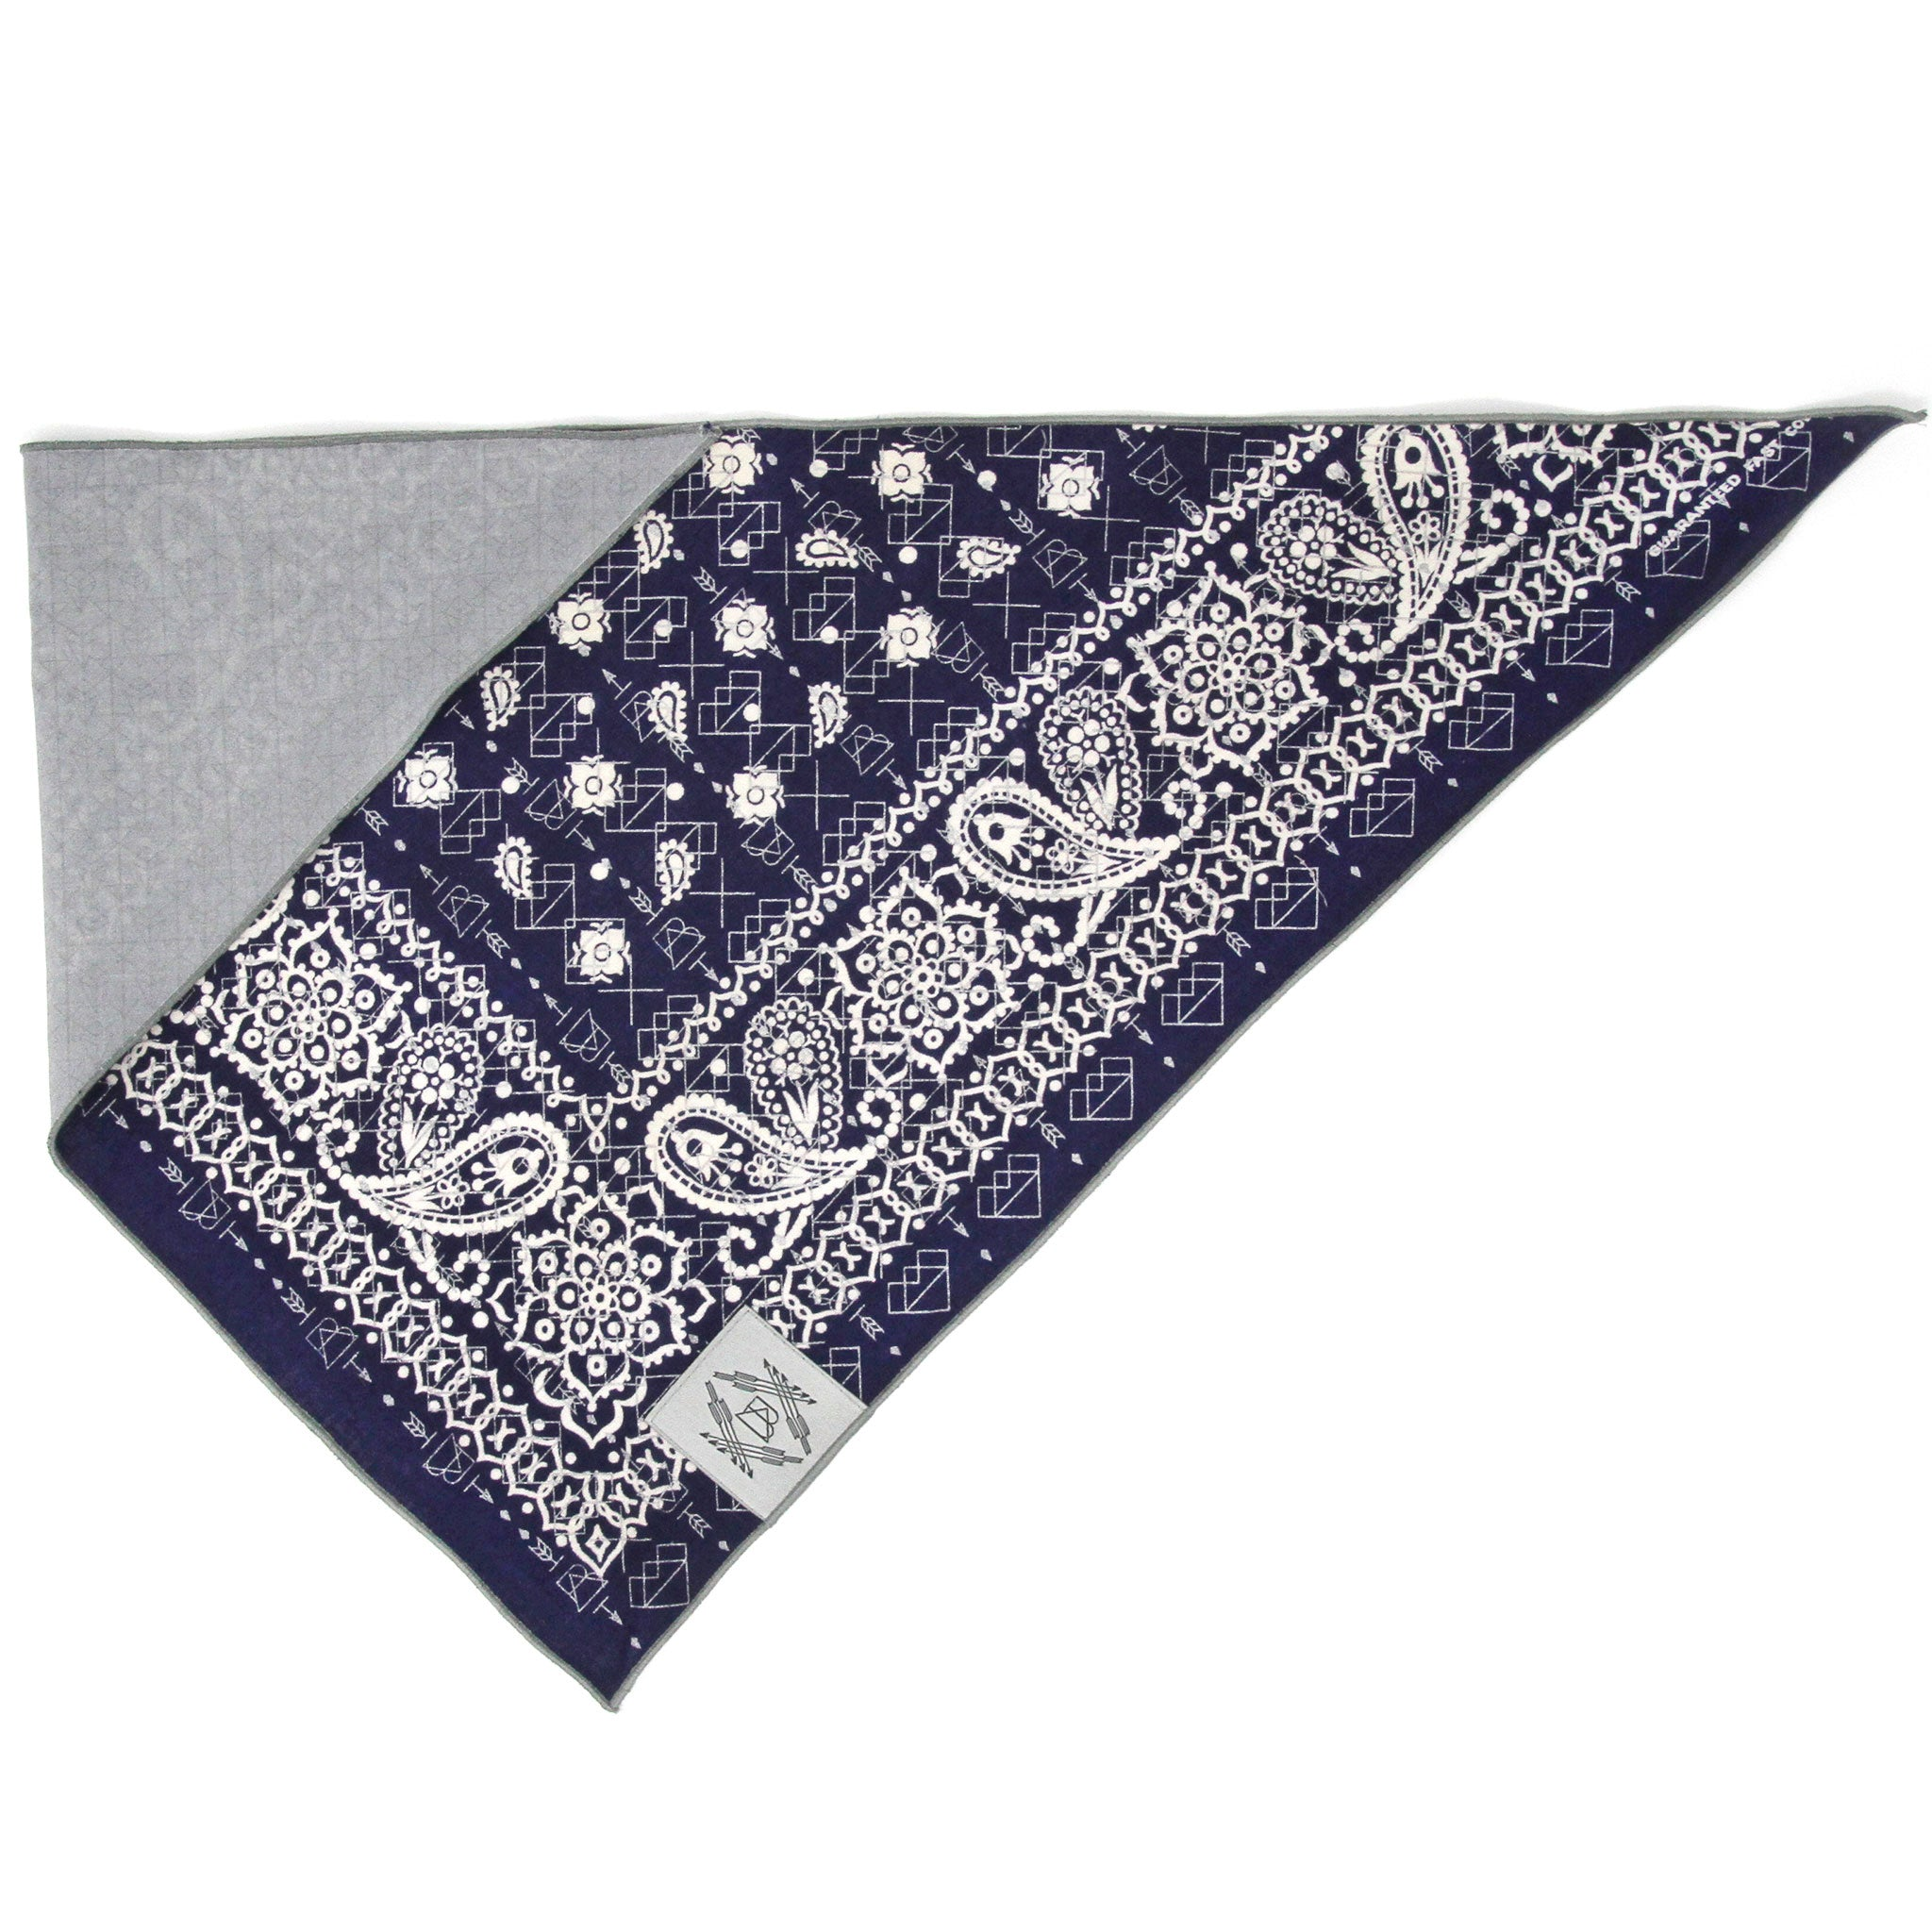 Classic Navy Blue Vintage Dog Bandana With Metallic Silver Screen Printing